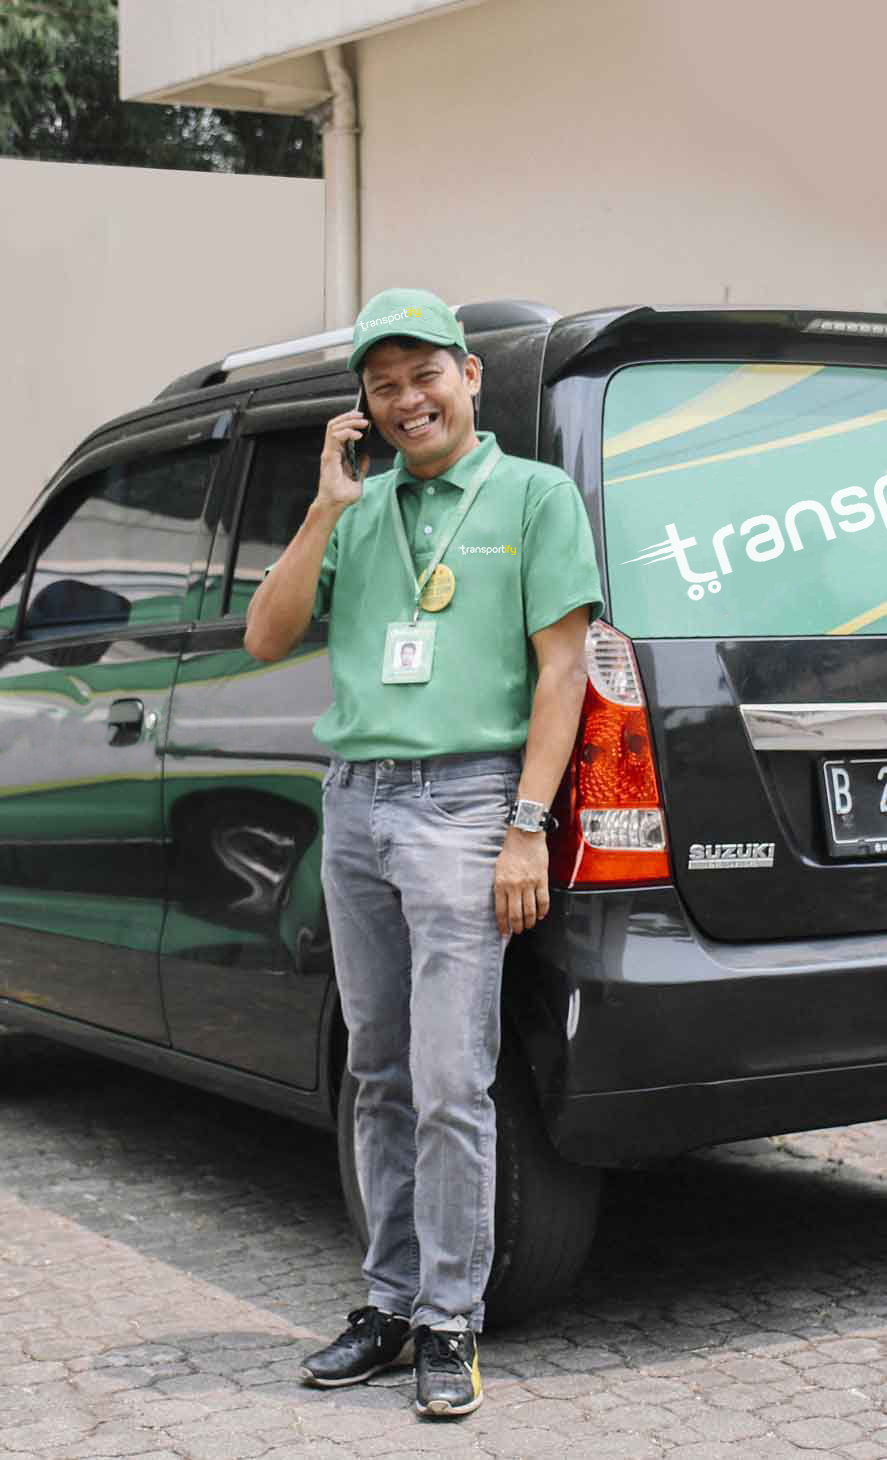 Delivery Driver for Hire In Transportify | Earn Like A Boss on Your